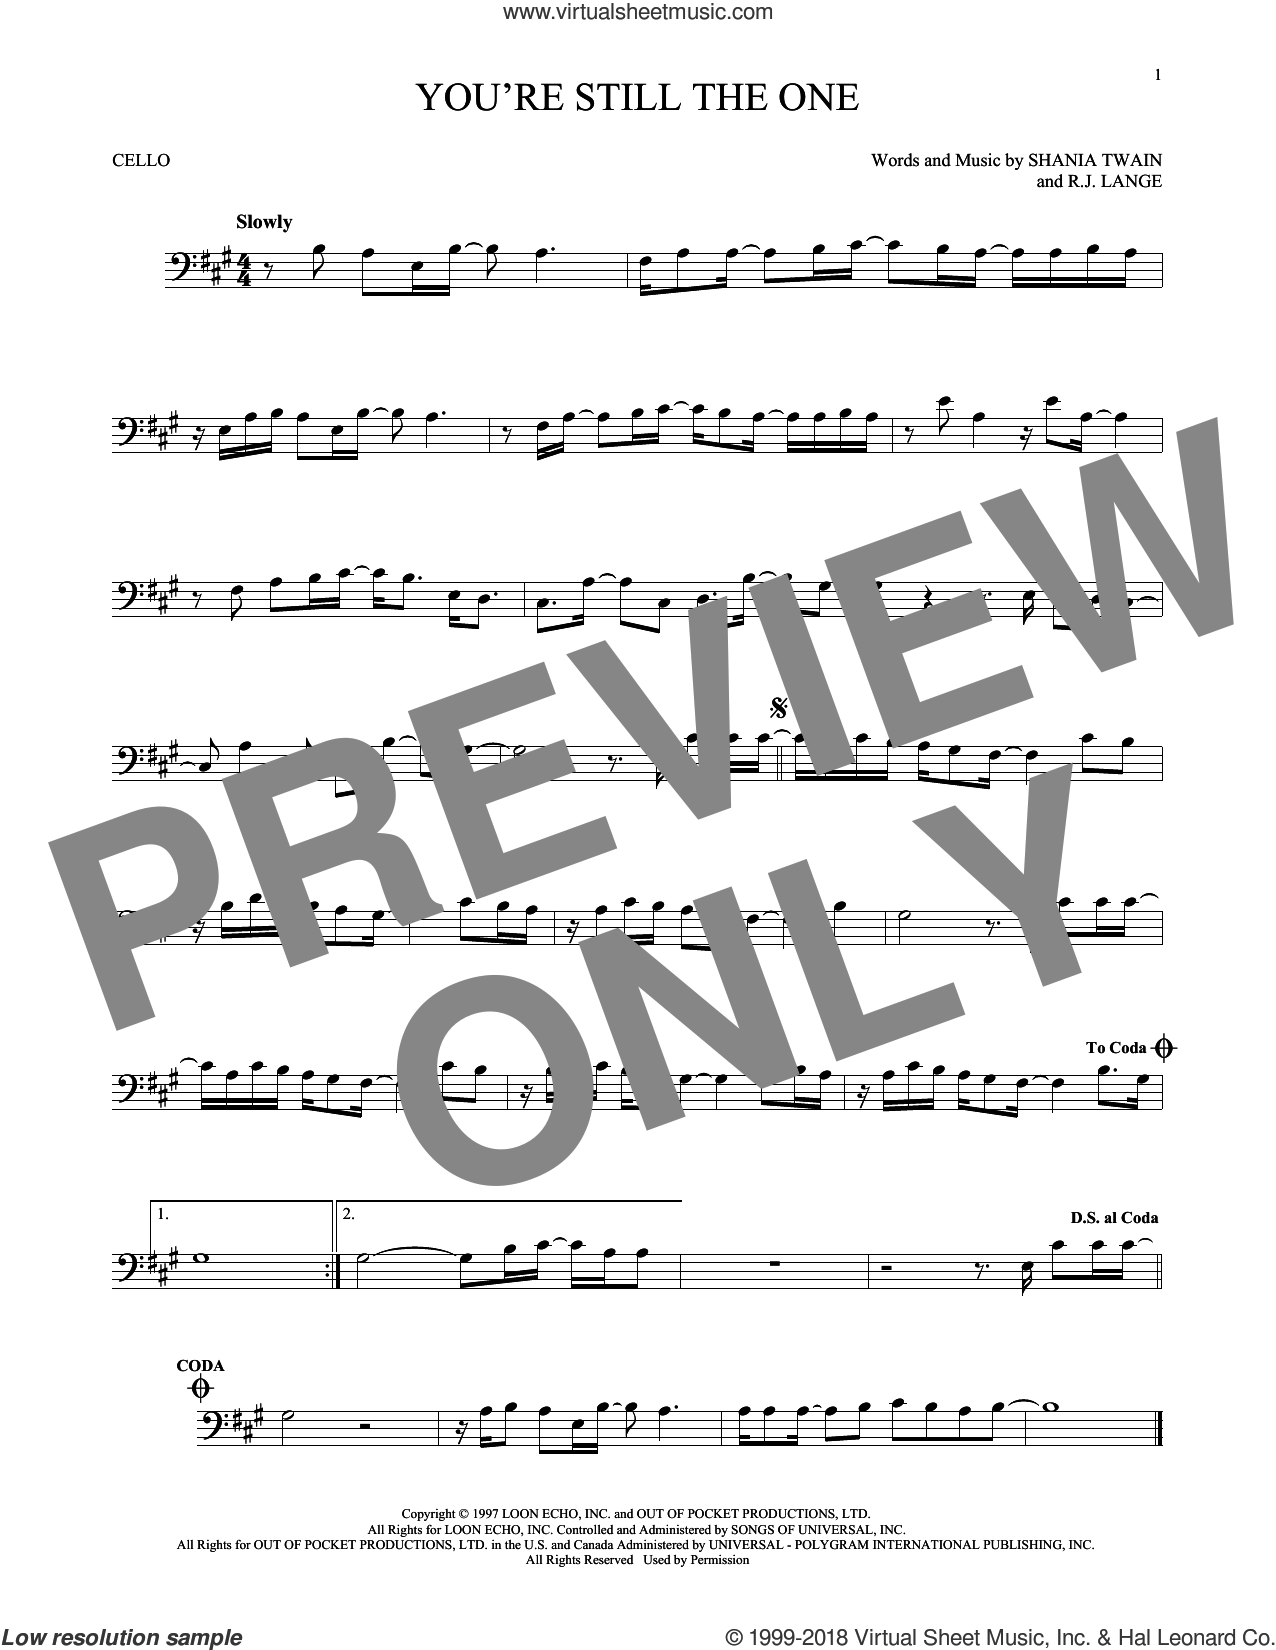 You're Still The One sheet music for cello solo by Shania Twain and Robert John Lange, intermediate skill level